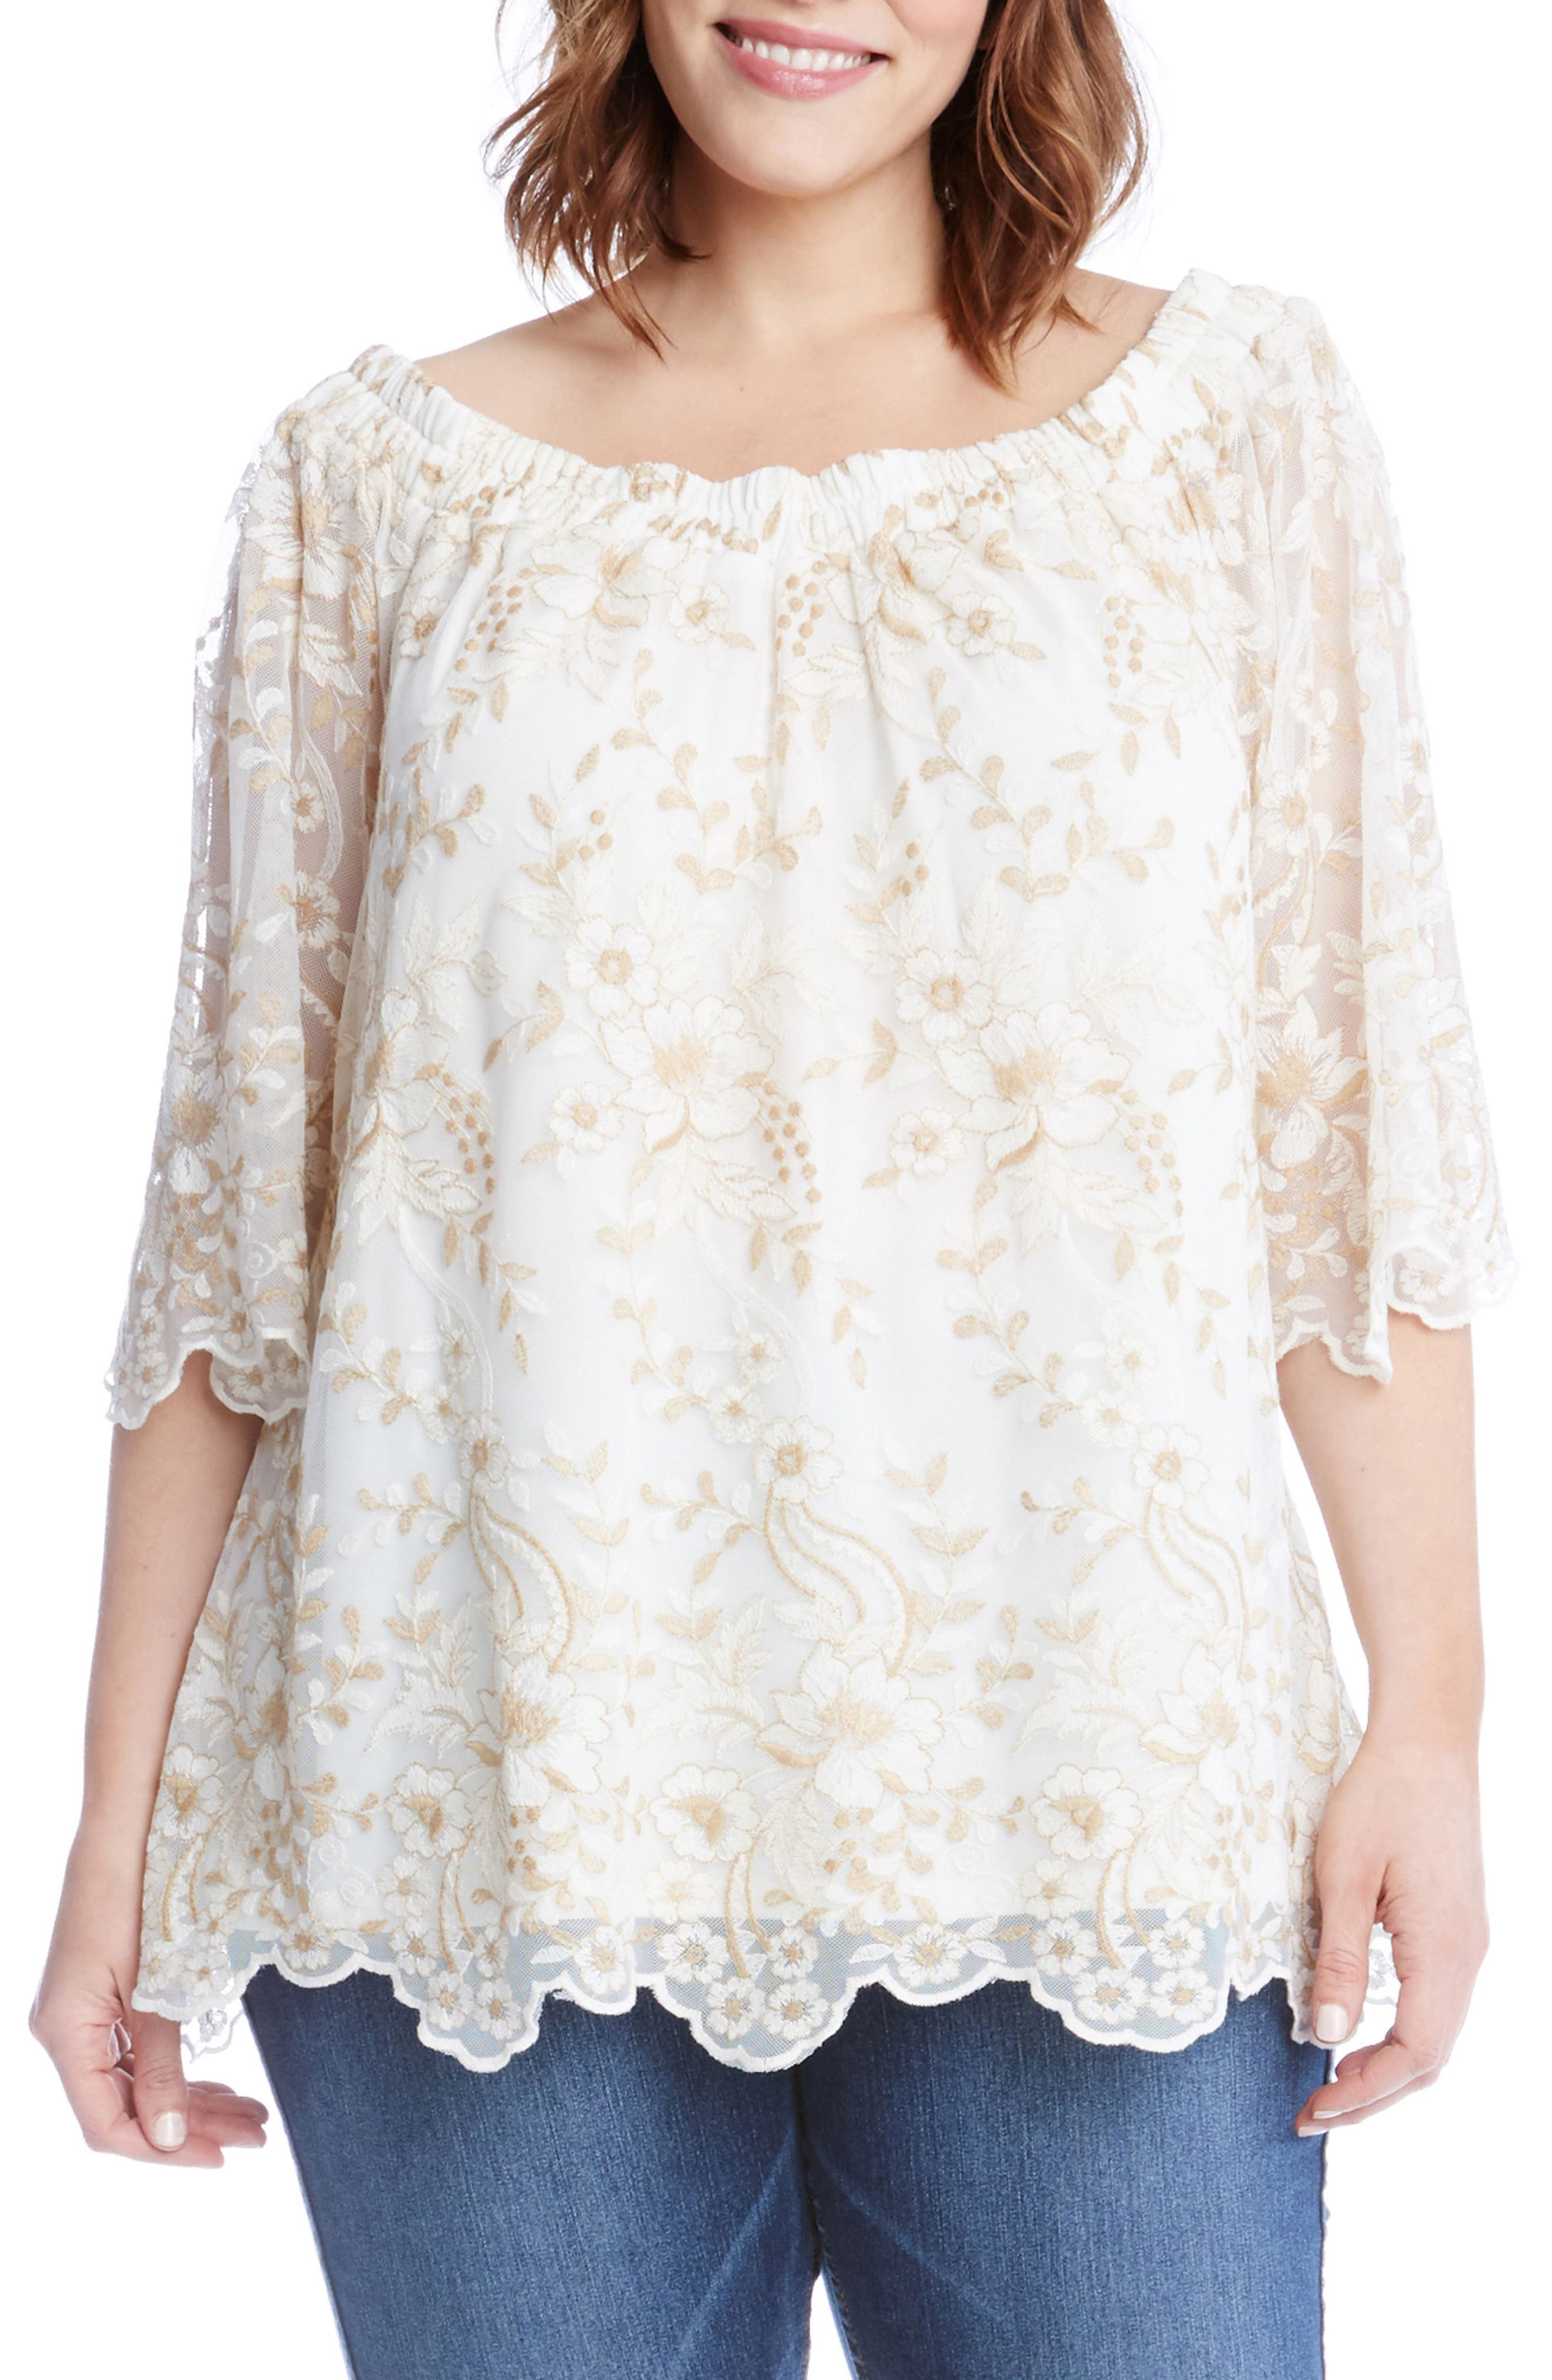 Main Image - Karen Kane Embroidered Mesh Off the Shoulder Top (Plus Size)